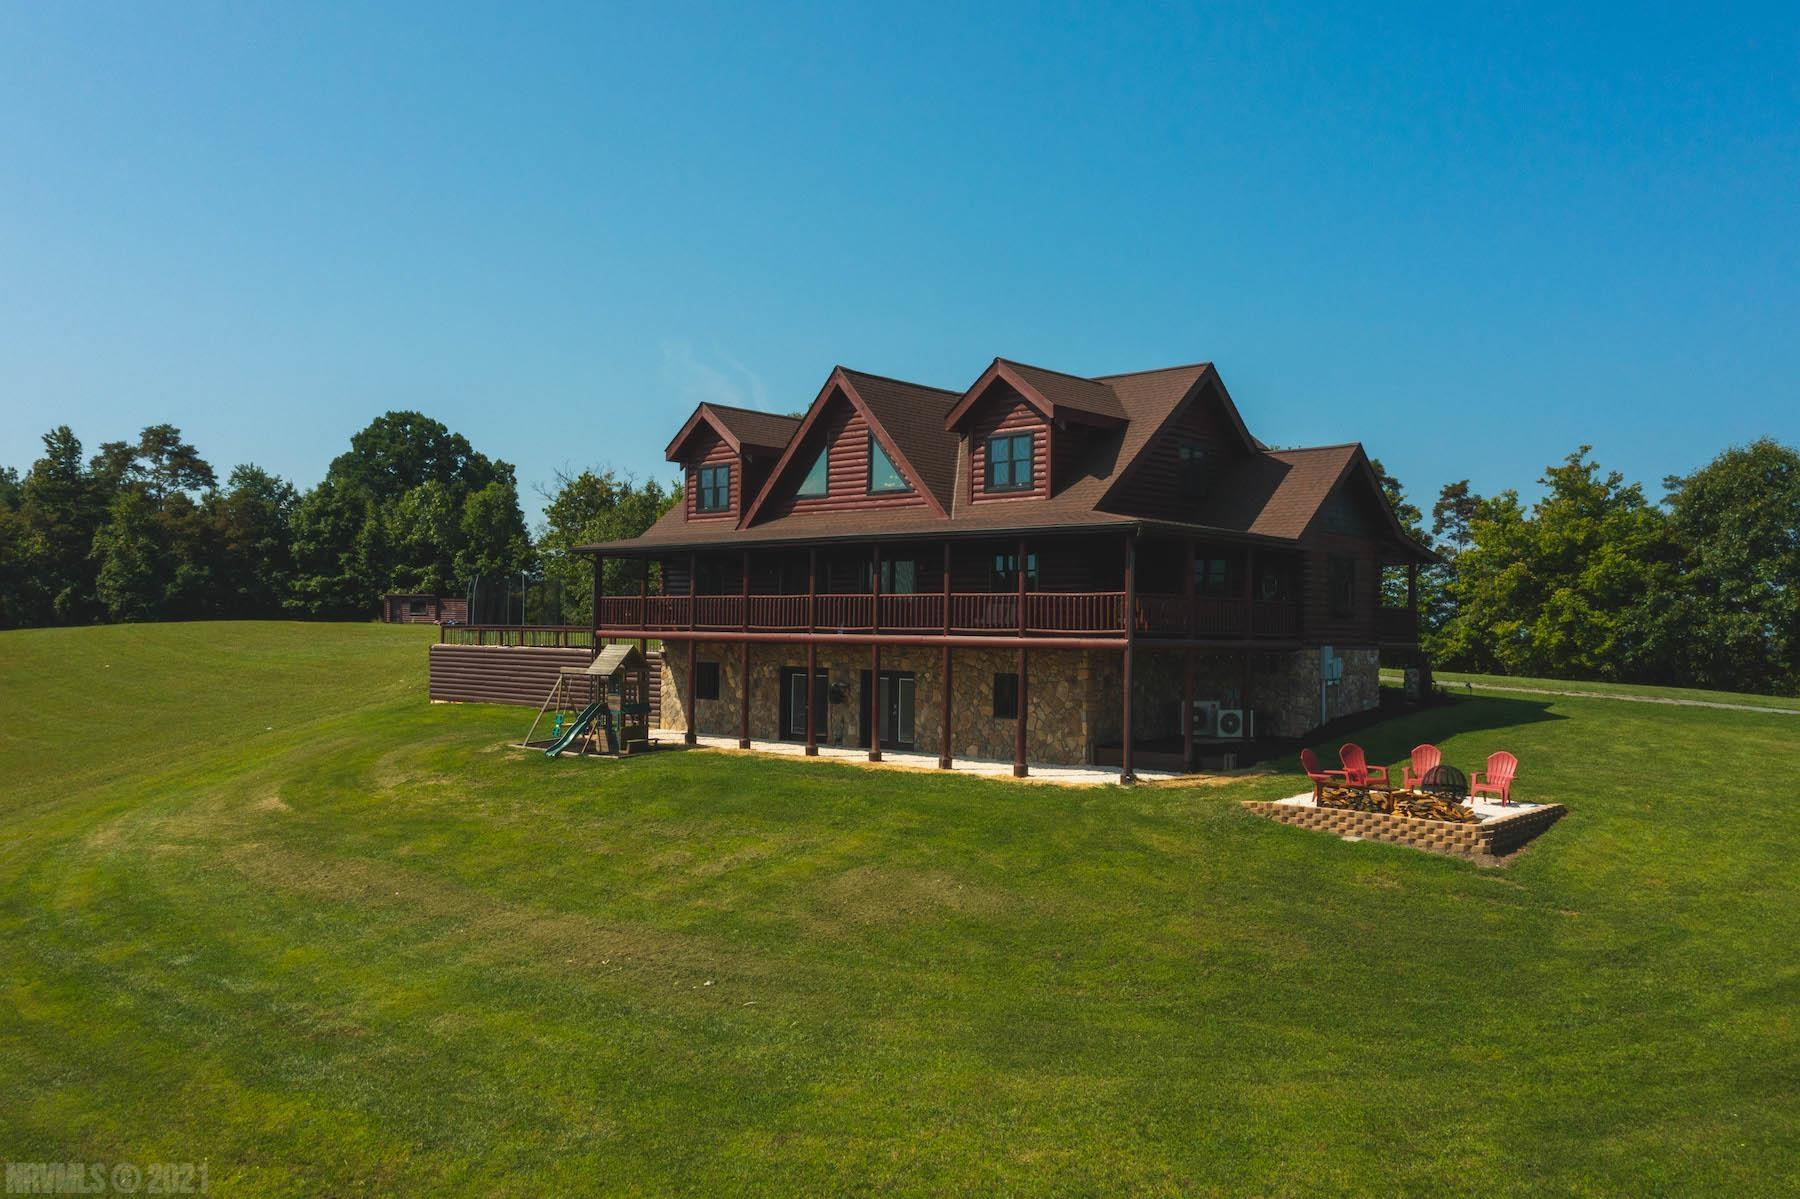 """Absolutely stunning is the words that come to mind with this amazing log home property! Custom built and designed this beautiful log home is an incredible eye catcher perched on the ridgetops of Indian Valley -Floyd VA!  The home offers an abundance of living space, an extraordinary display of custom rock, tile work, blk granite kitchen floor and blk walnut counters.  This property is the complete package both in the home and land. Nearly 80 acres of wooded and open pastures makes this an ultimate recreation property. Deer, turkey & bear are seen almost daily.  Headwaters of what are known as Little Indian Creek form on this property in addition to other springs and streams. Open pastures should you decide to keep livestock, a barn already in place on the eastern boundary of the property.  If all of this was not enough, the VIEWS ARE INCREDIBLE!  Enjoy the 3/4 wrap around Trex covered porch and fire pit area to take in the views of the """"Valley.""""  Call to arrange your private showing!"""